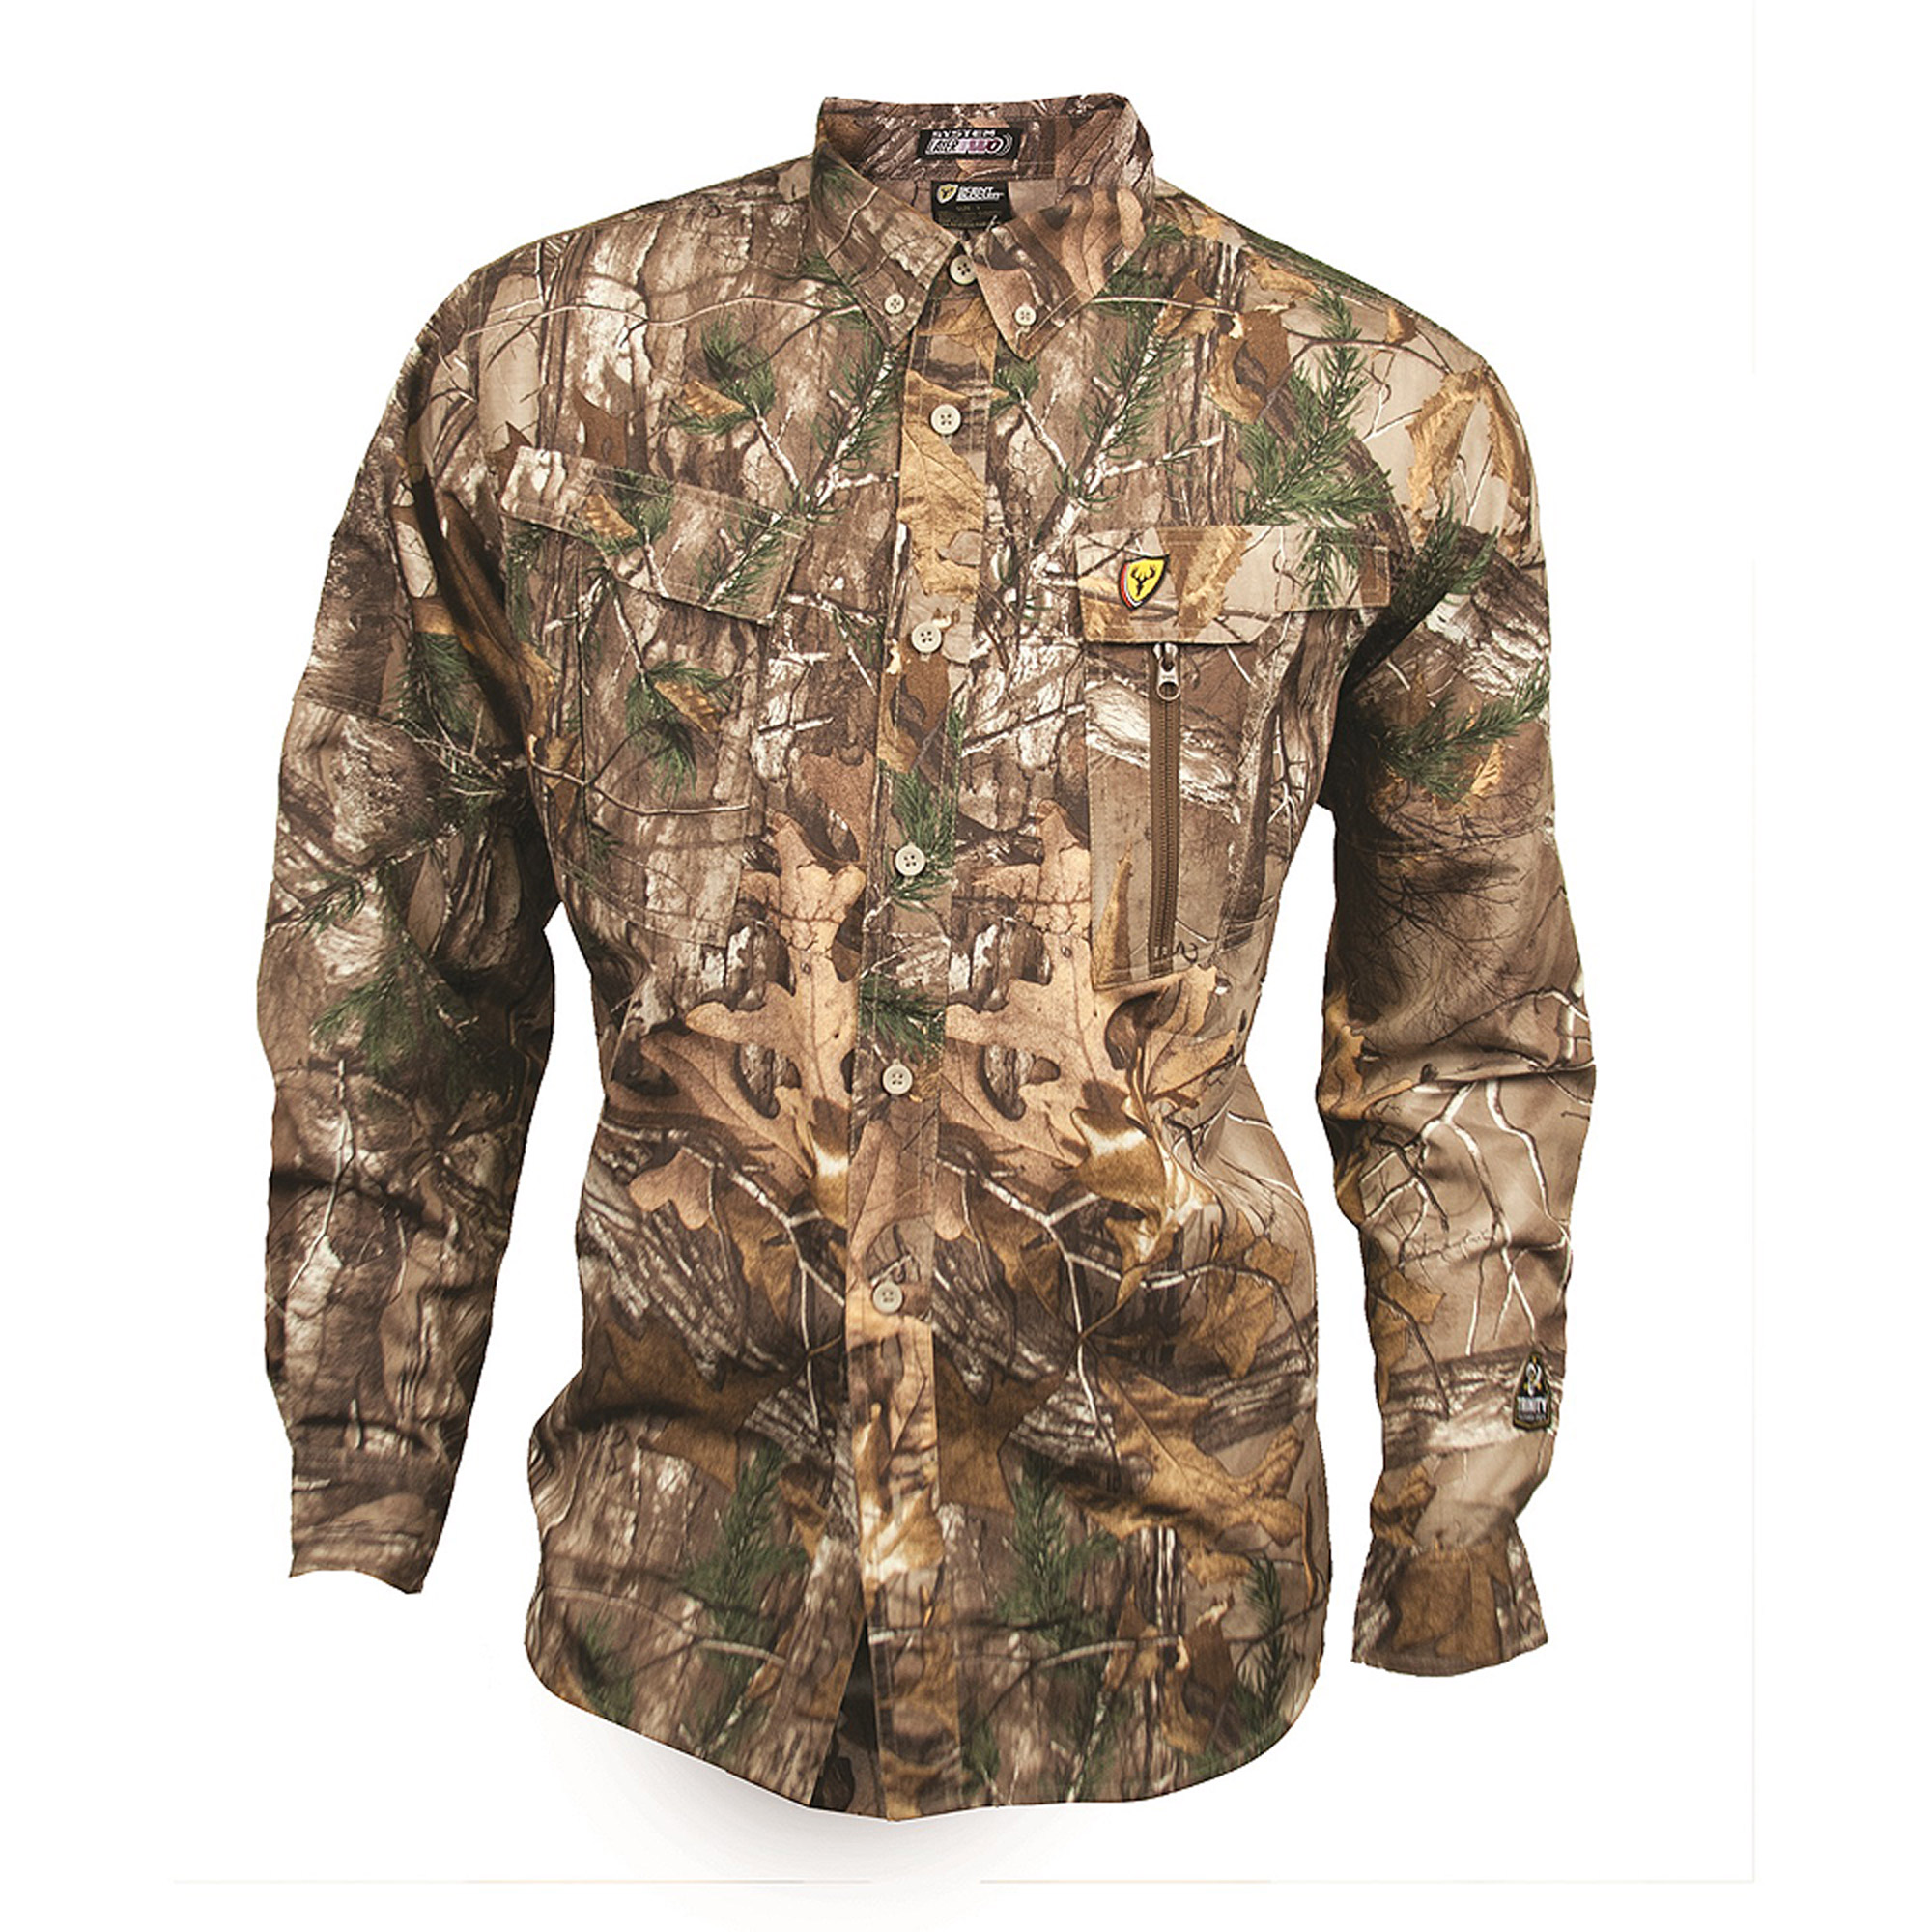 Scent Blocker Trinity Featherlite Shirt, Mossy Oak Break-Up Country